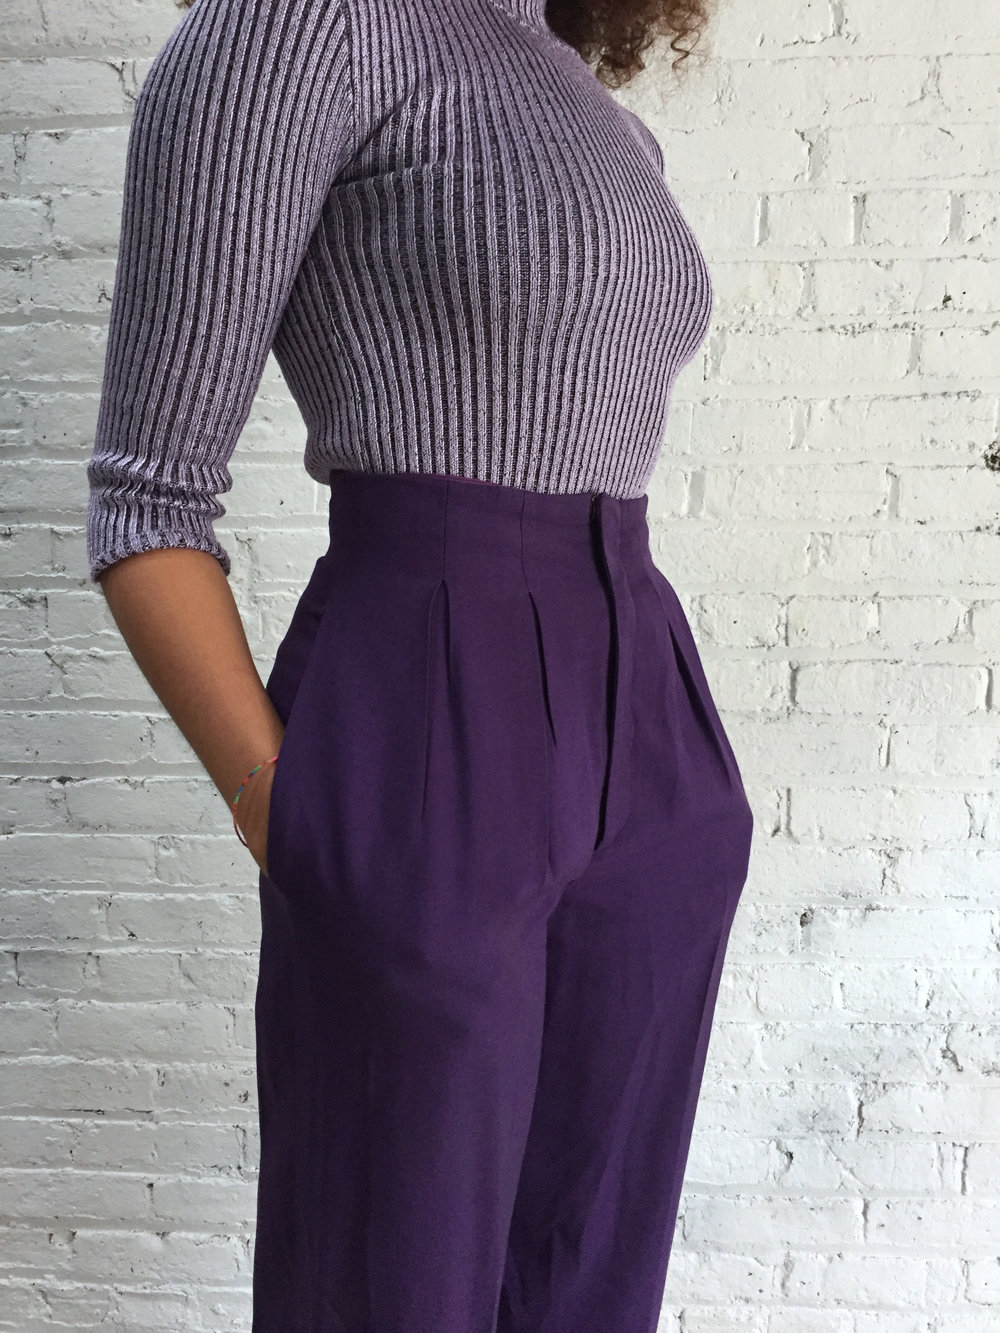 Purple High Waisted Dress